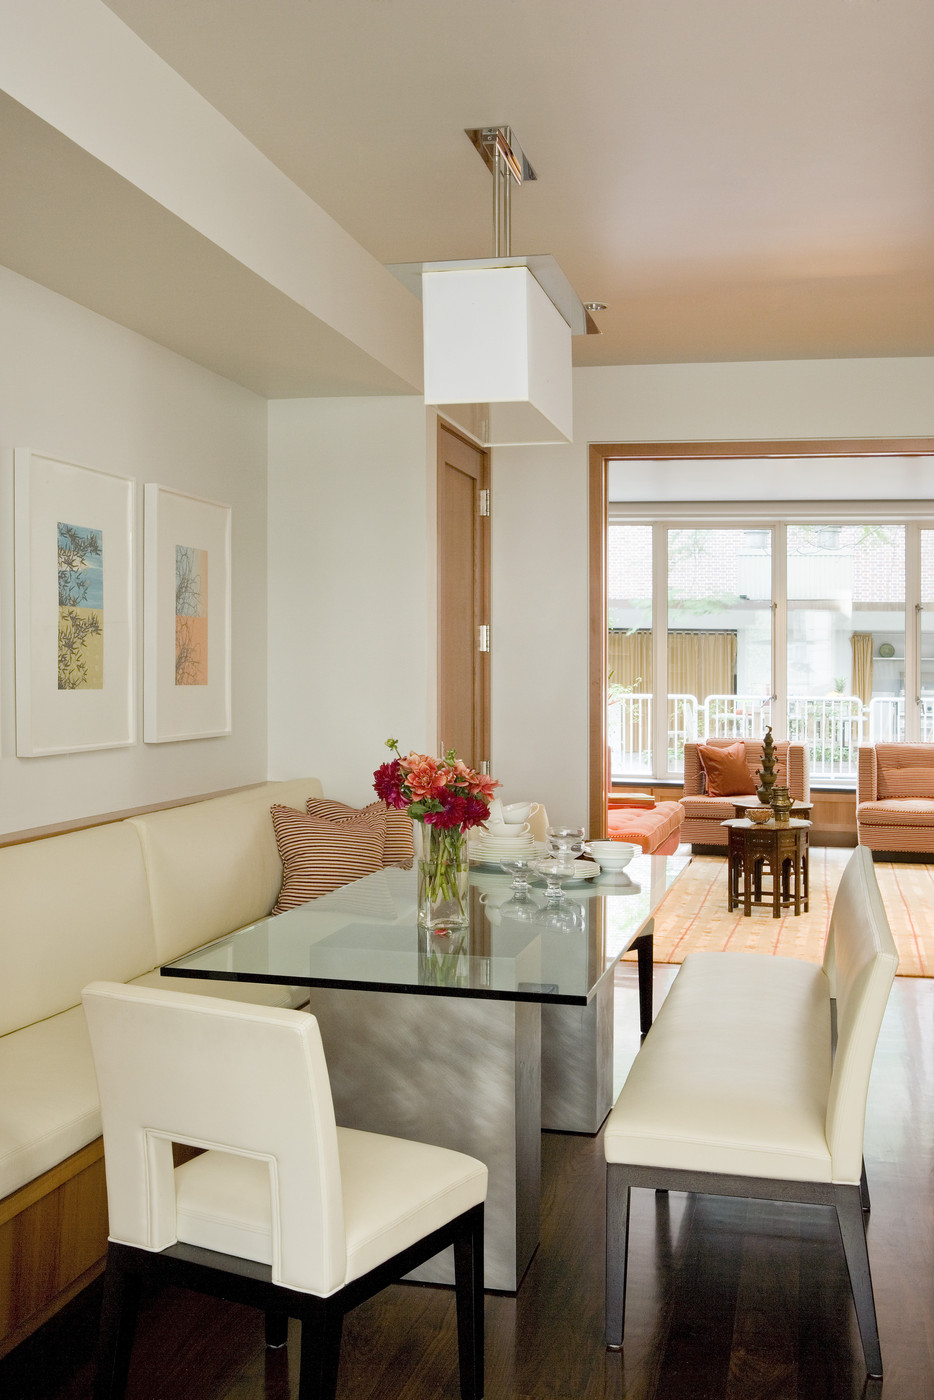 Banquette Ceiling Photos, Design, Ideas, Remodel, And Decor   Lonny